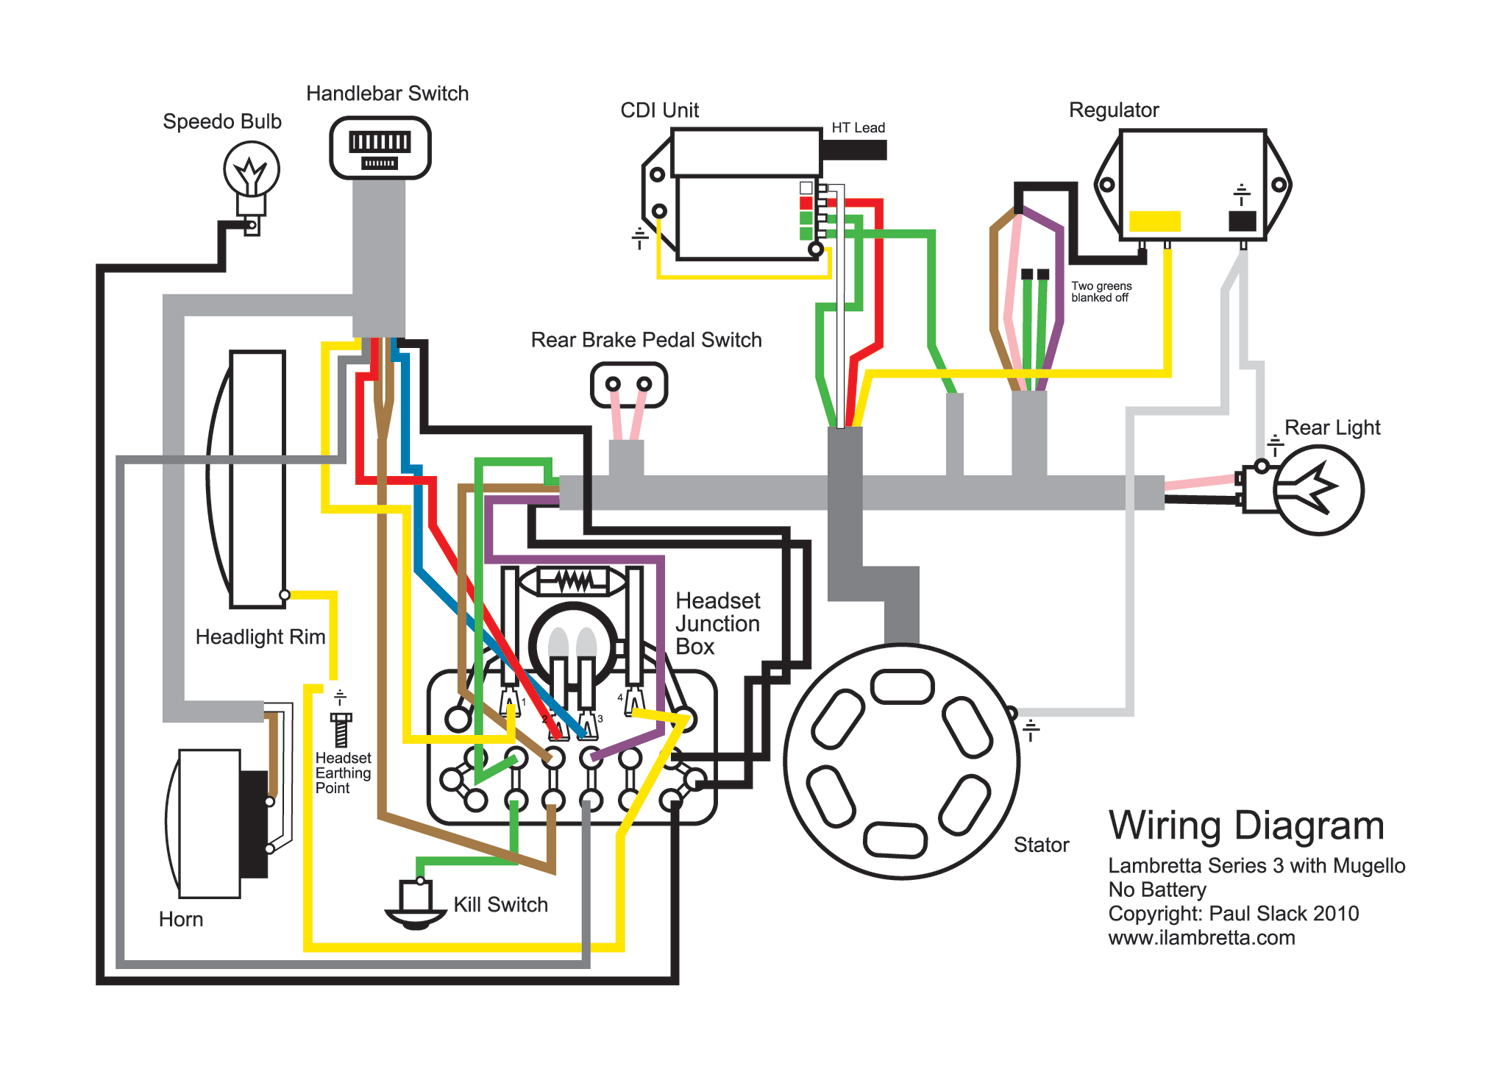 wrg 2570] 12v series wiring diagram 8n 12 volt conversion diagram 12 volt series wiring diagrams on headlight #14